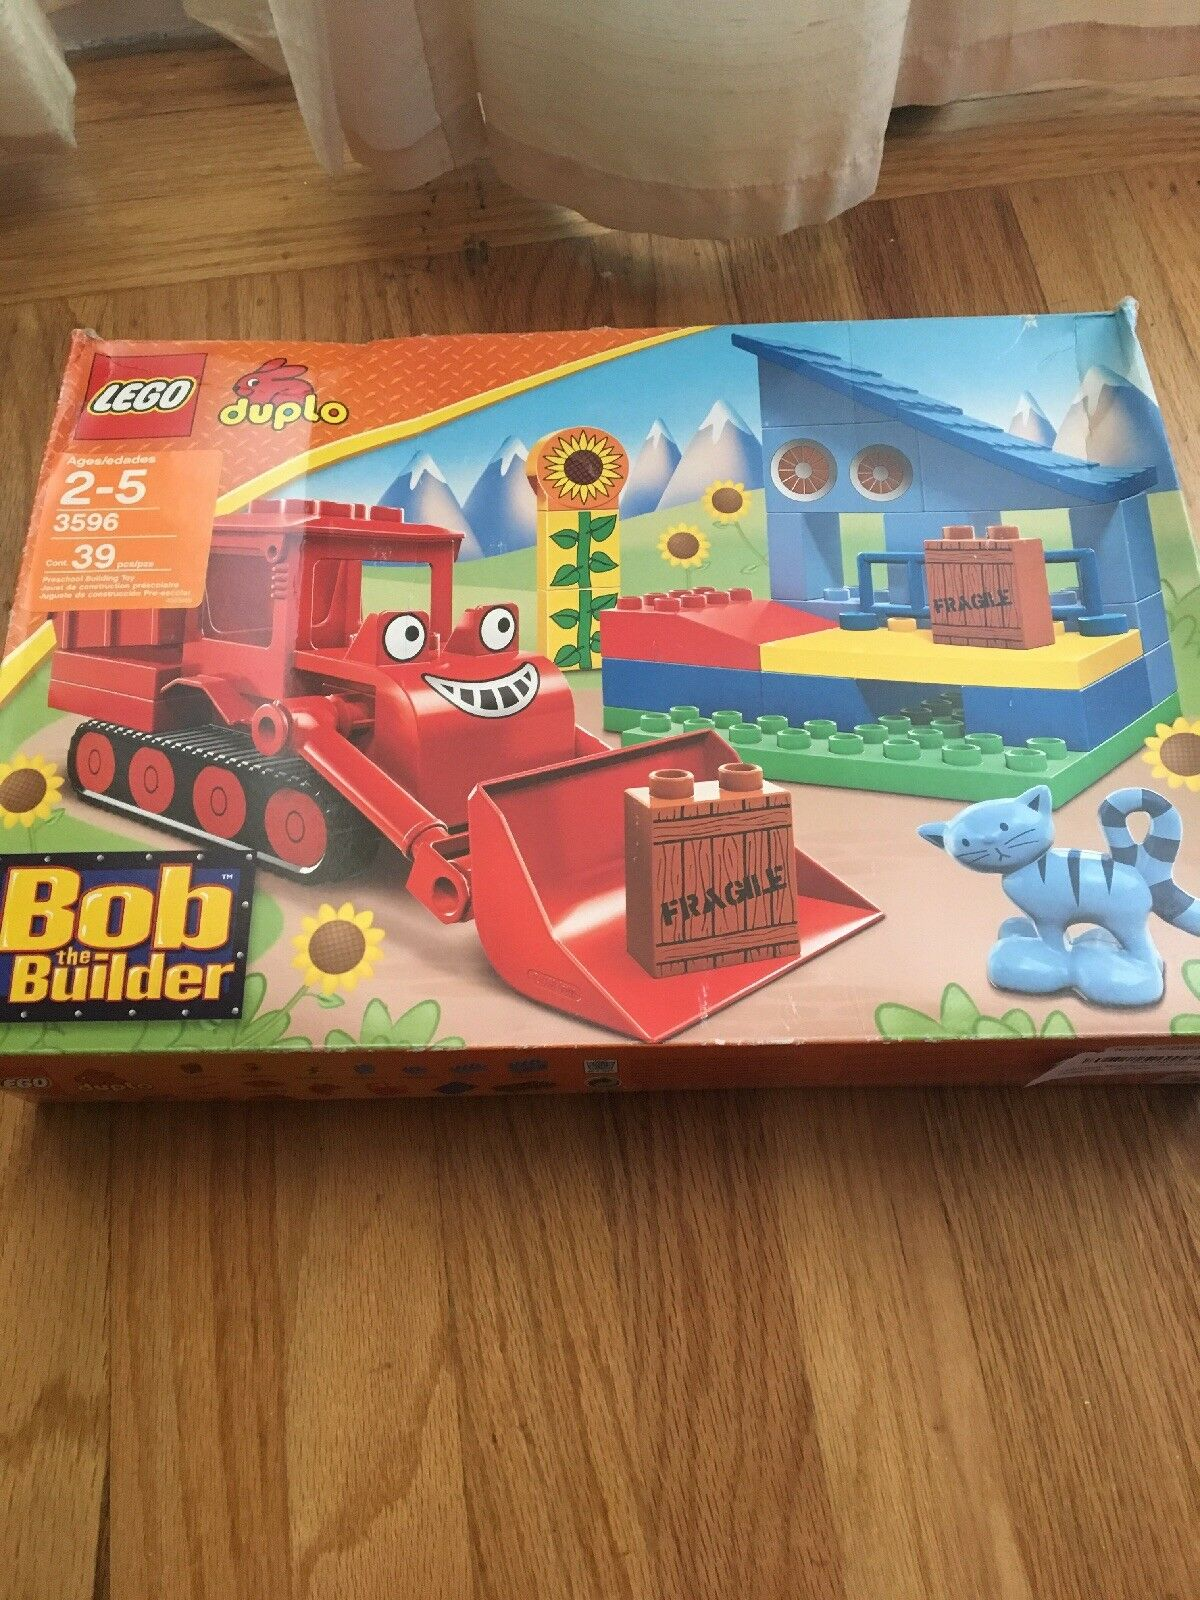 Lego Duplo Bob the the the Builder MUK unopened 2db7b7